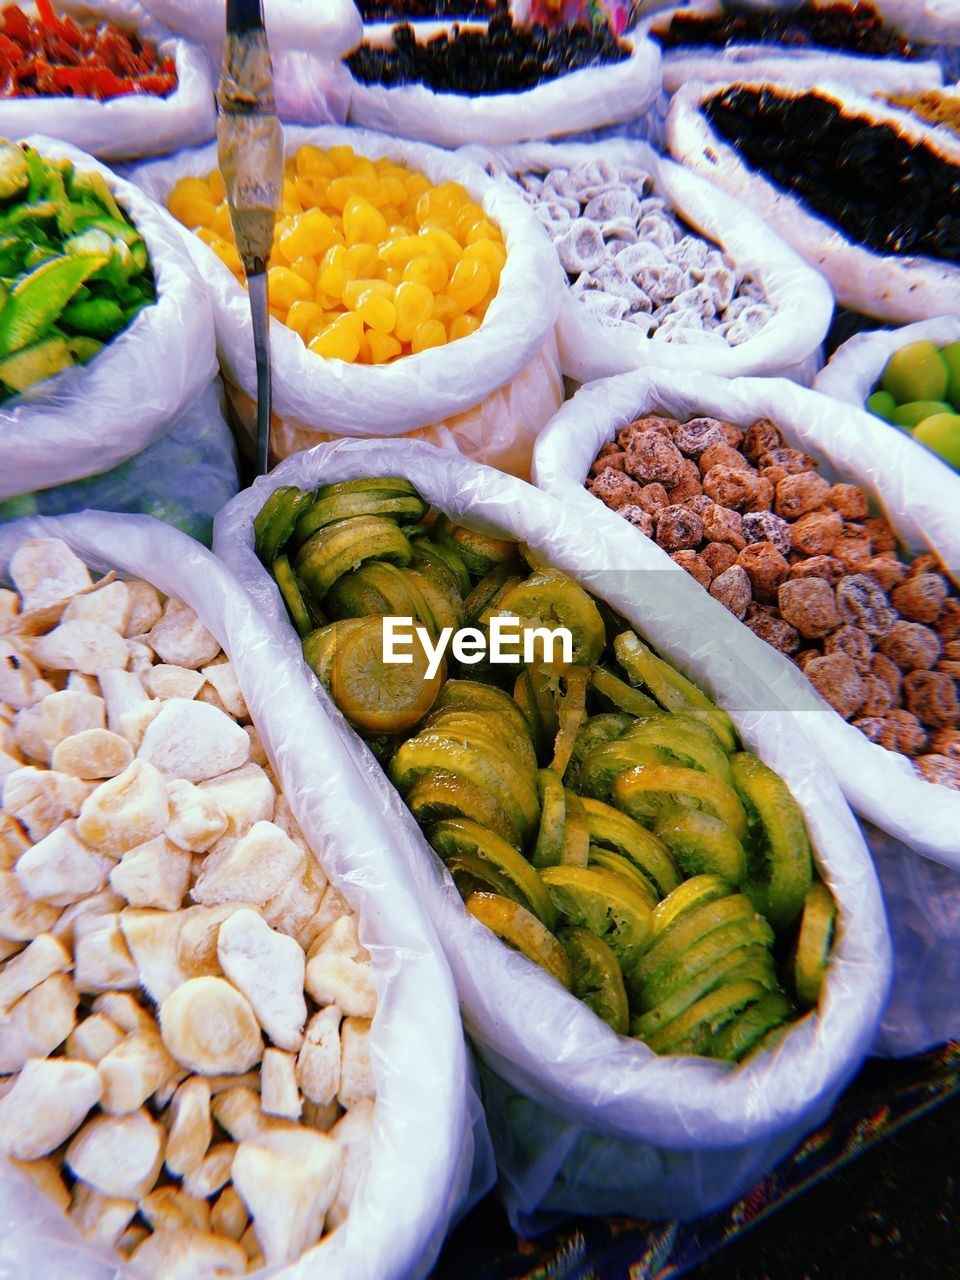 High angle view of various food for sale in market